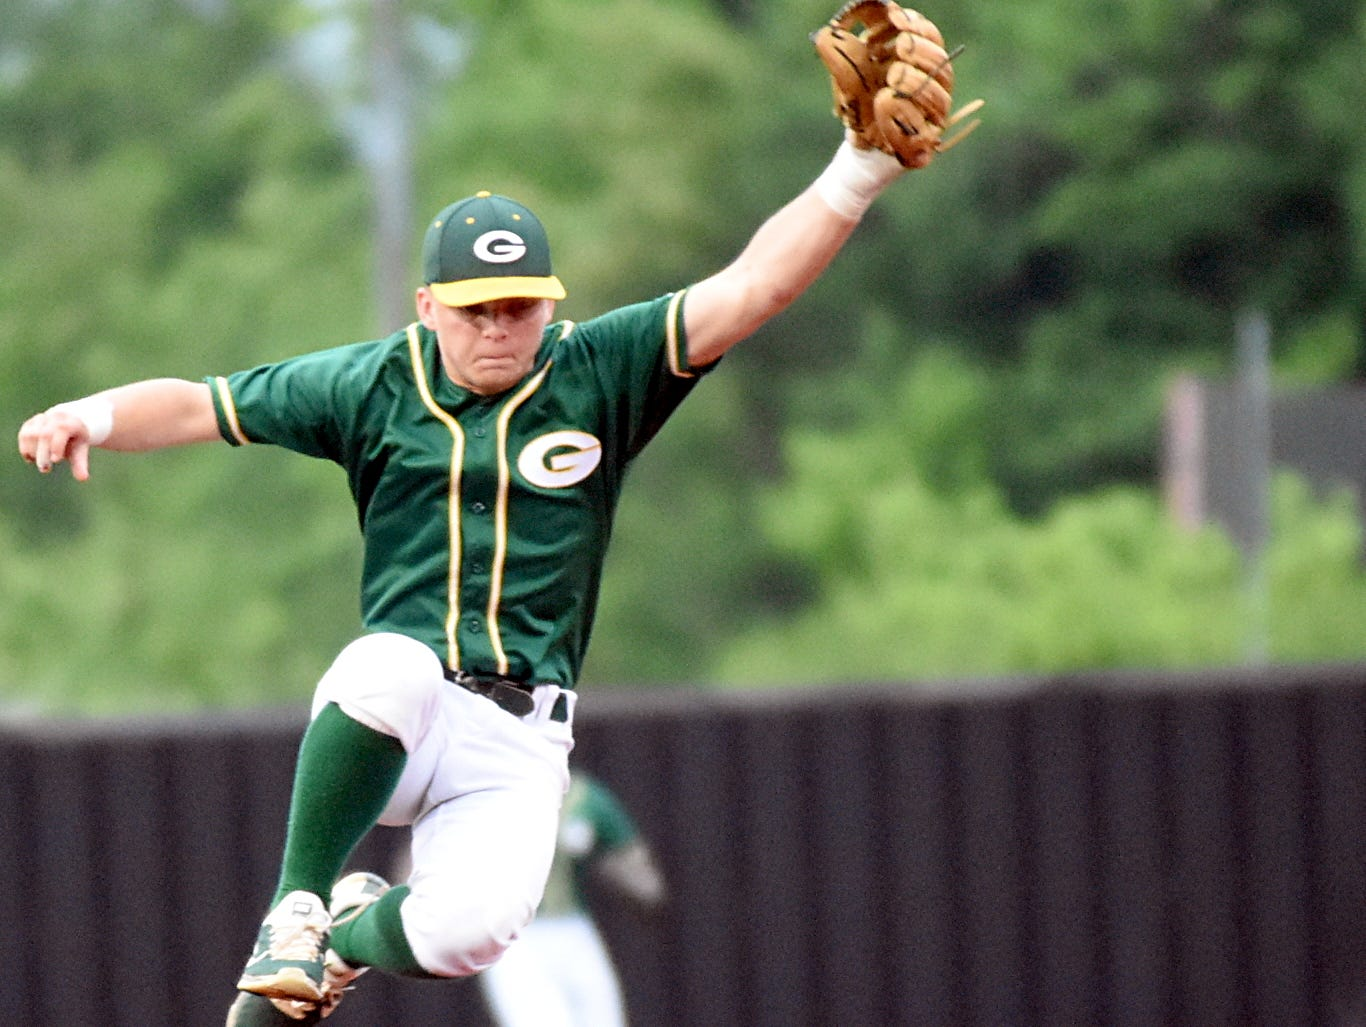 Gallatin High senior shortstop James Rockwell makes a leaping attempt to catch a first-inning throw as Wilson Central senior leadoff hitter Drew Trice slides safely into second base with a stolen base.